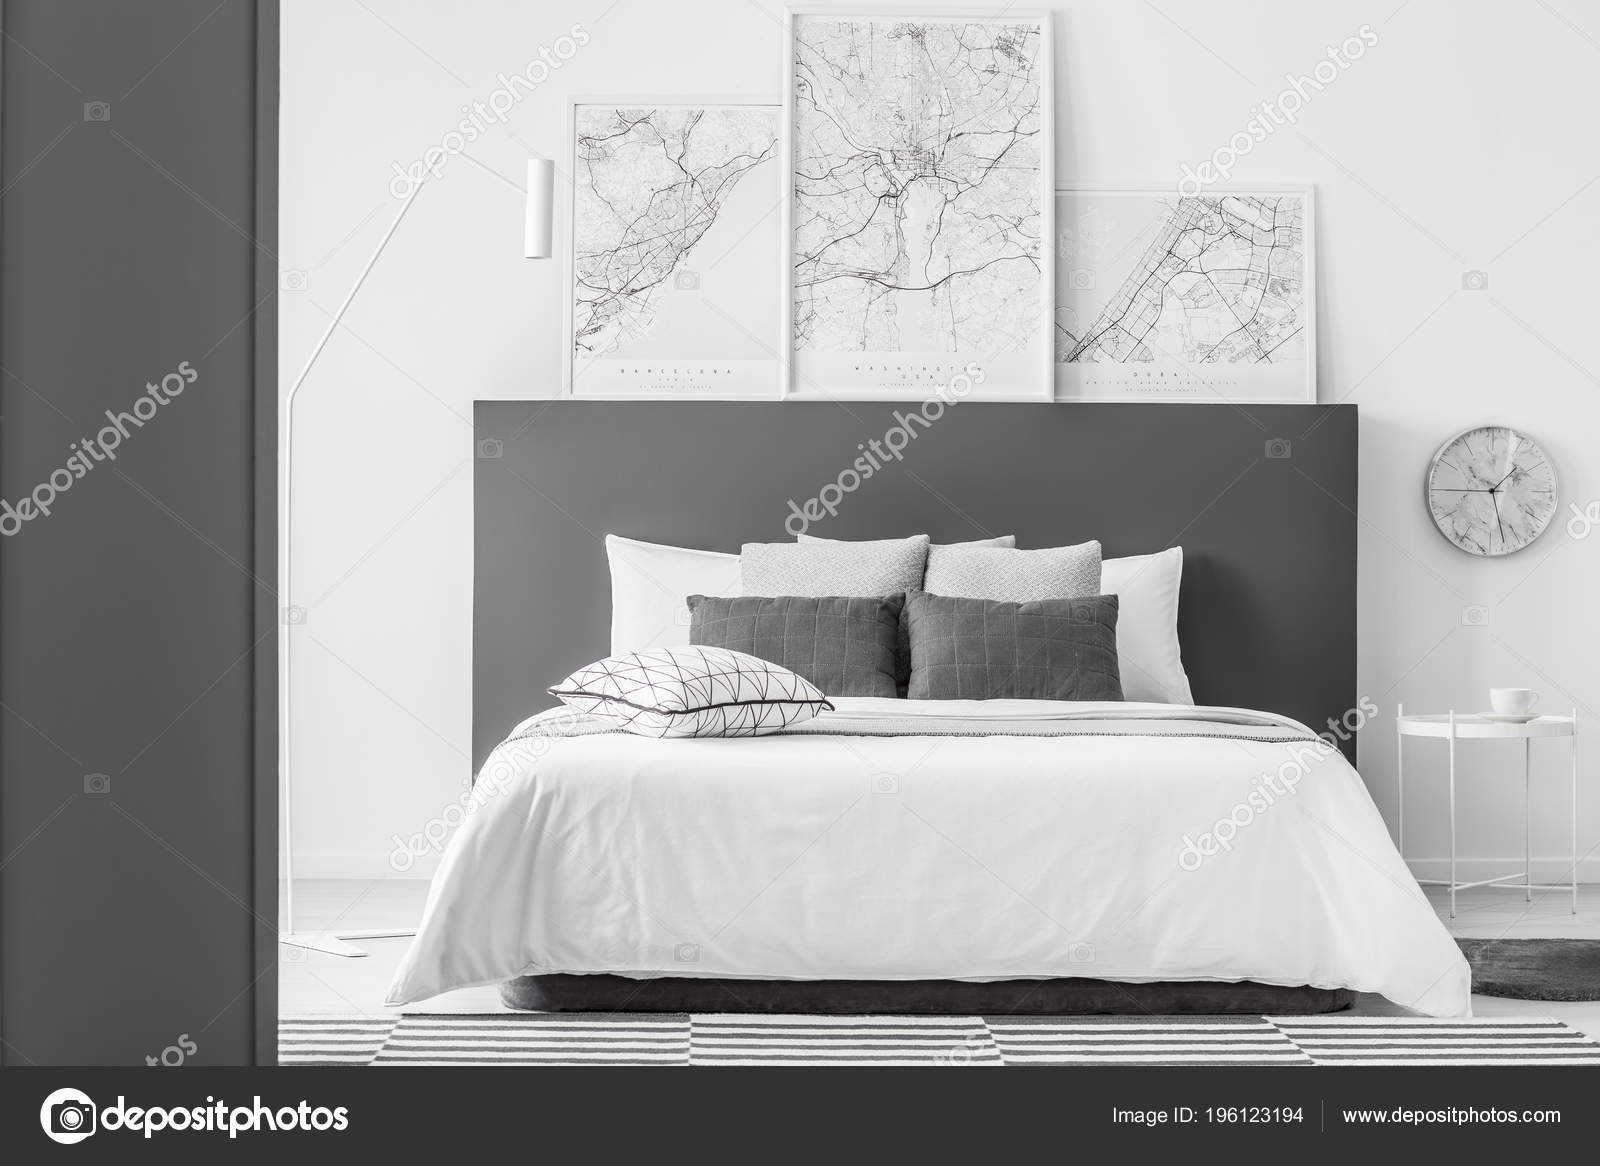 Simple Bed Maps Bed Grey Bedhead Pillows Simple Bedroom Interior Clock